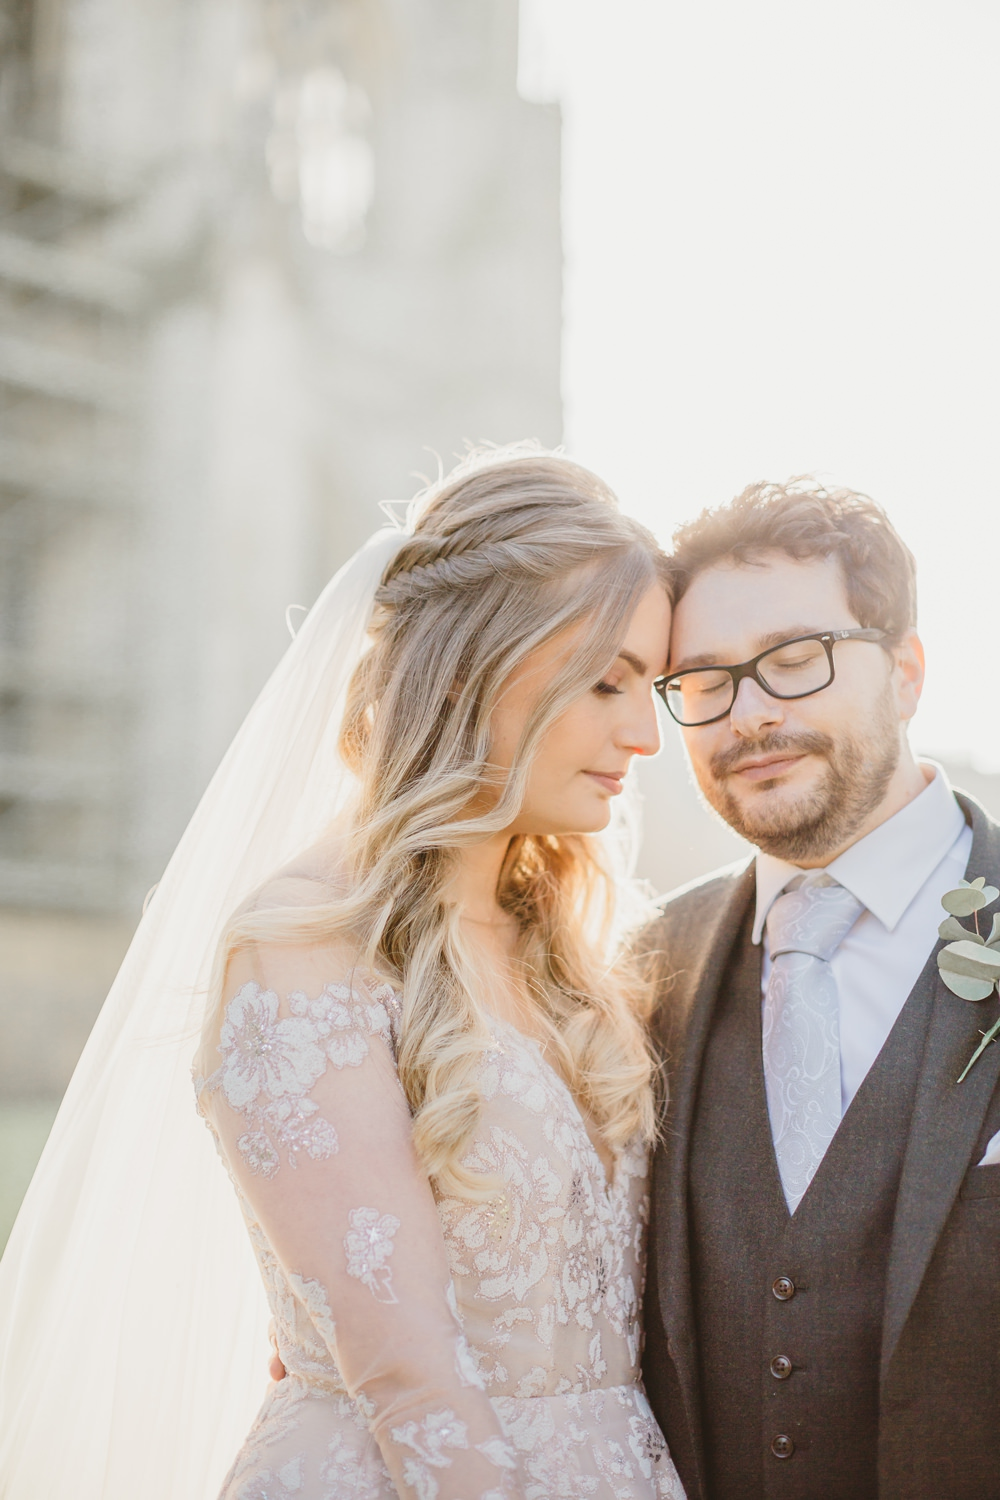 Bride Bridal Hair Style Half Up Half Down Plait Braid Veil York Minster Wedding Amy Lou Photography